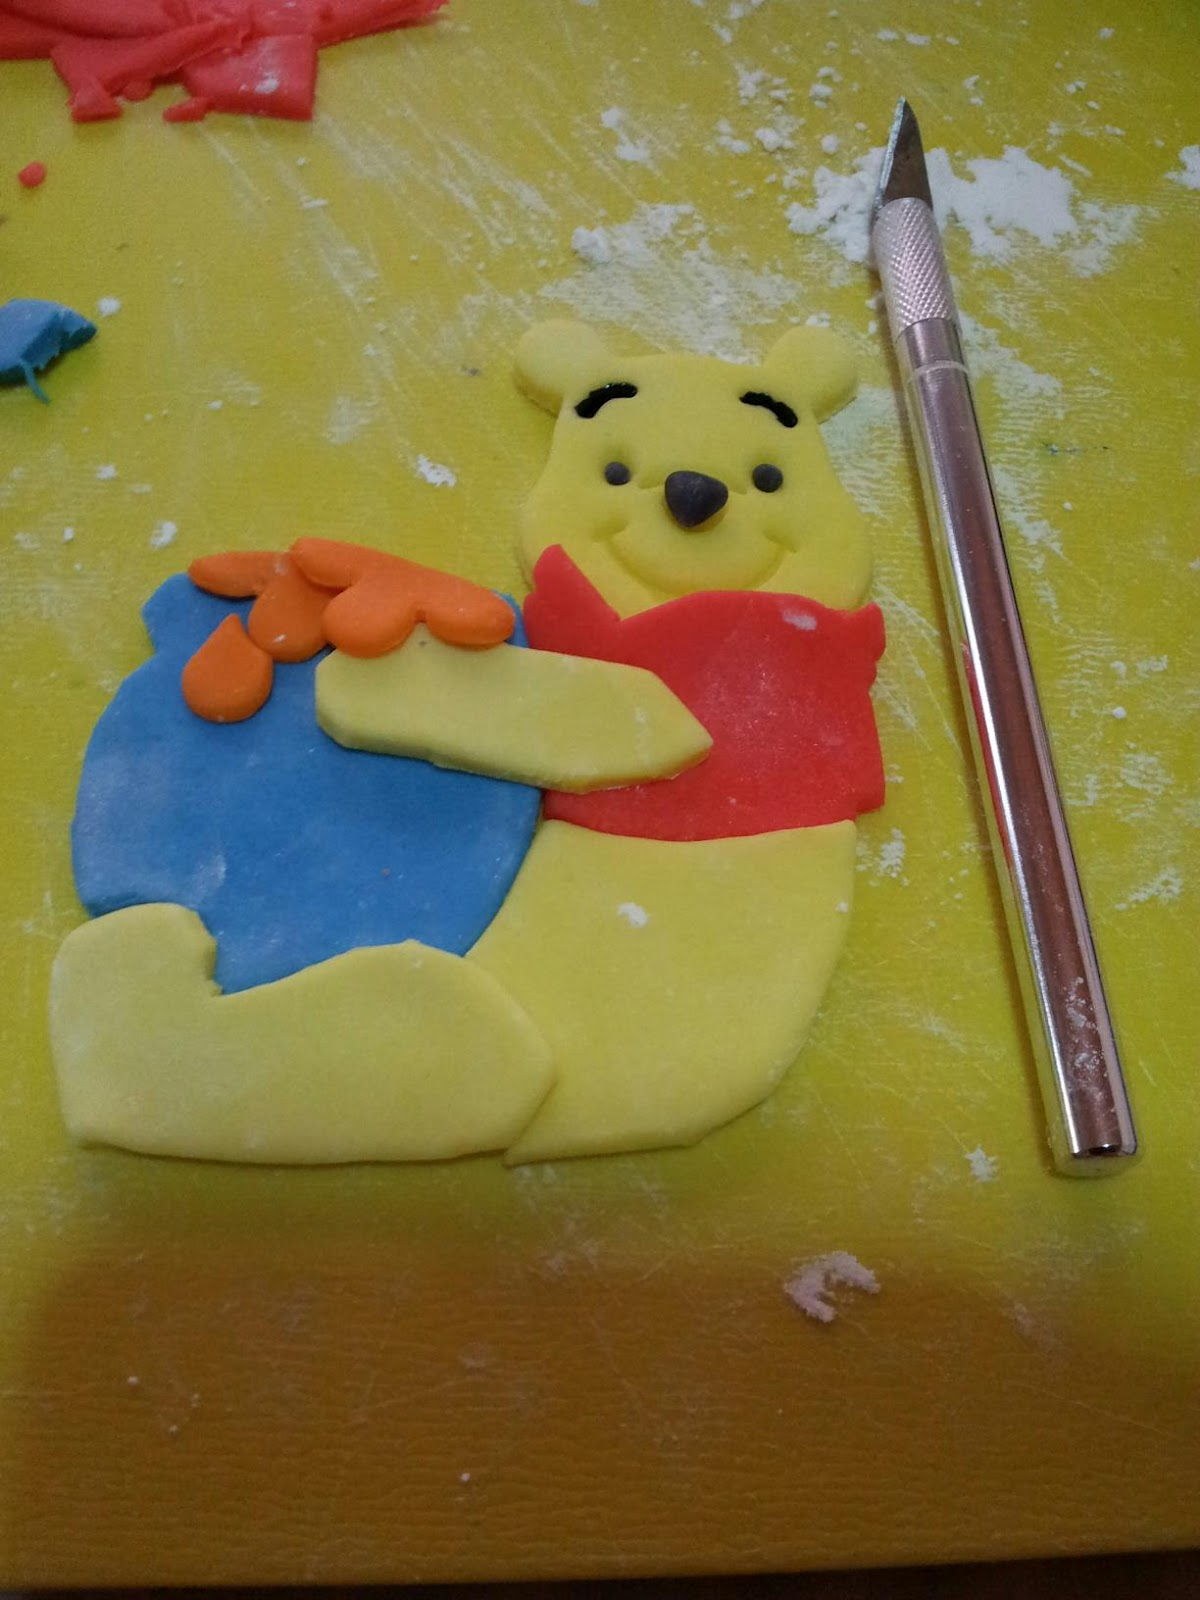 Artsy Craftsy Me: Pooh cake toppers and badminton-themed cake